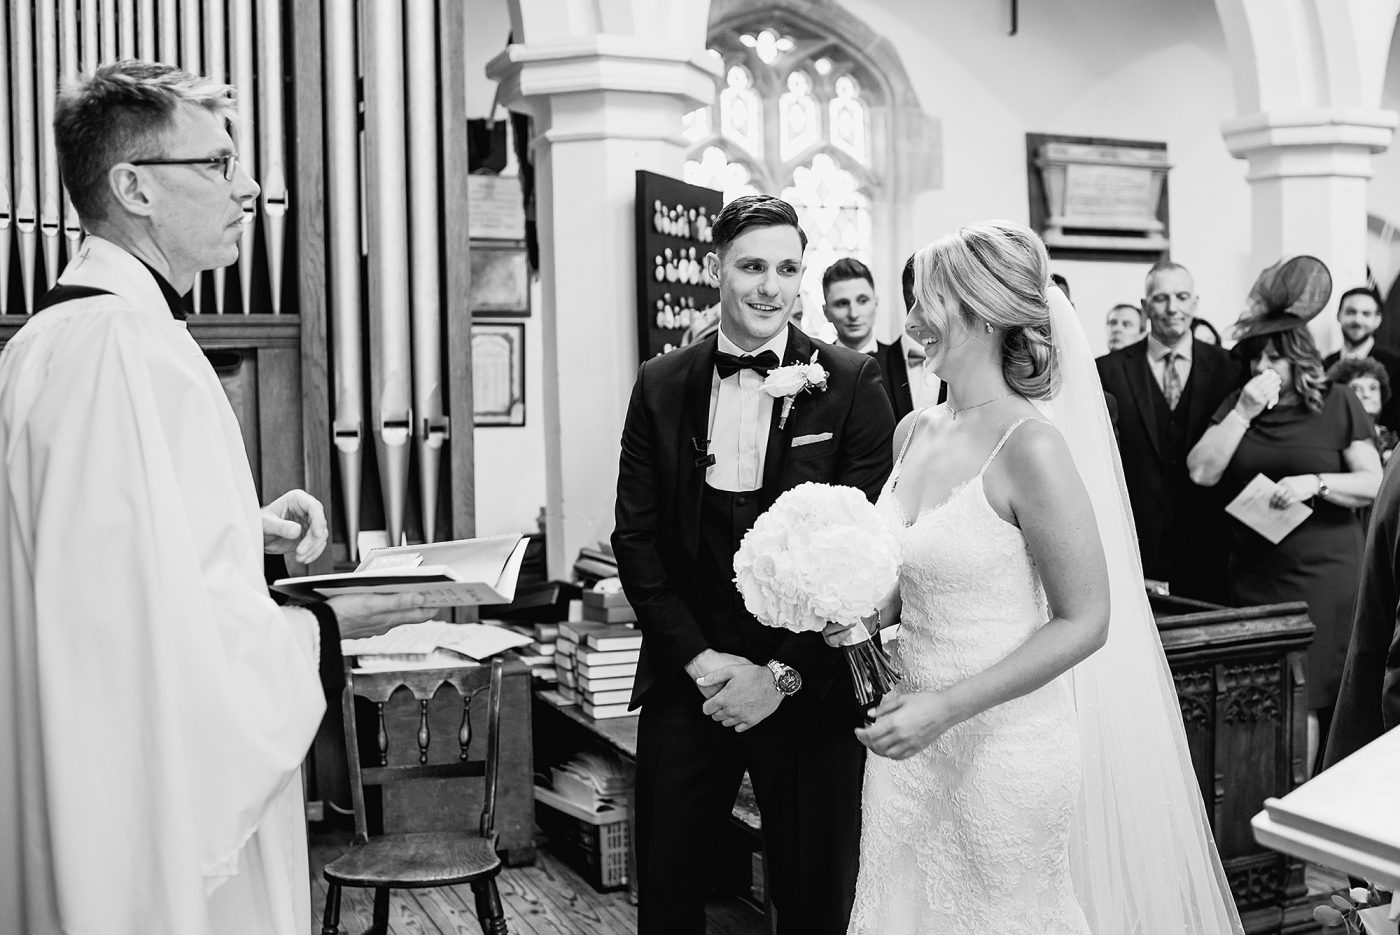 bride and groom smiling at eachother